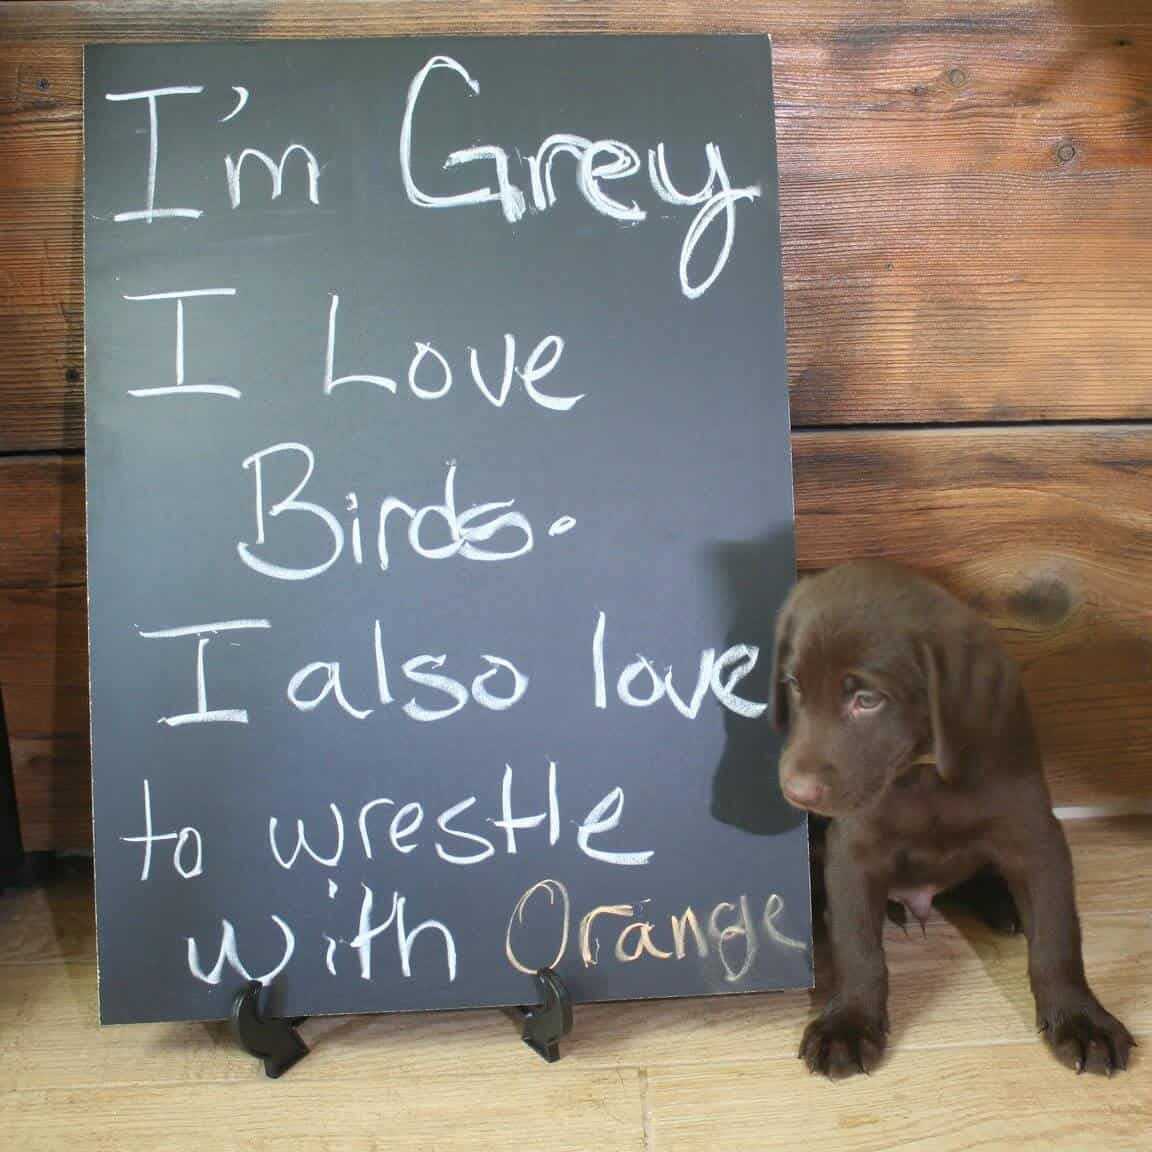 Chocolate Labrador Puppy with chalkboard sign Grey lab puppy